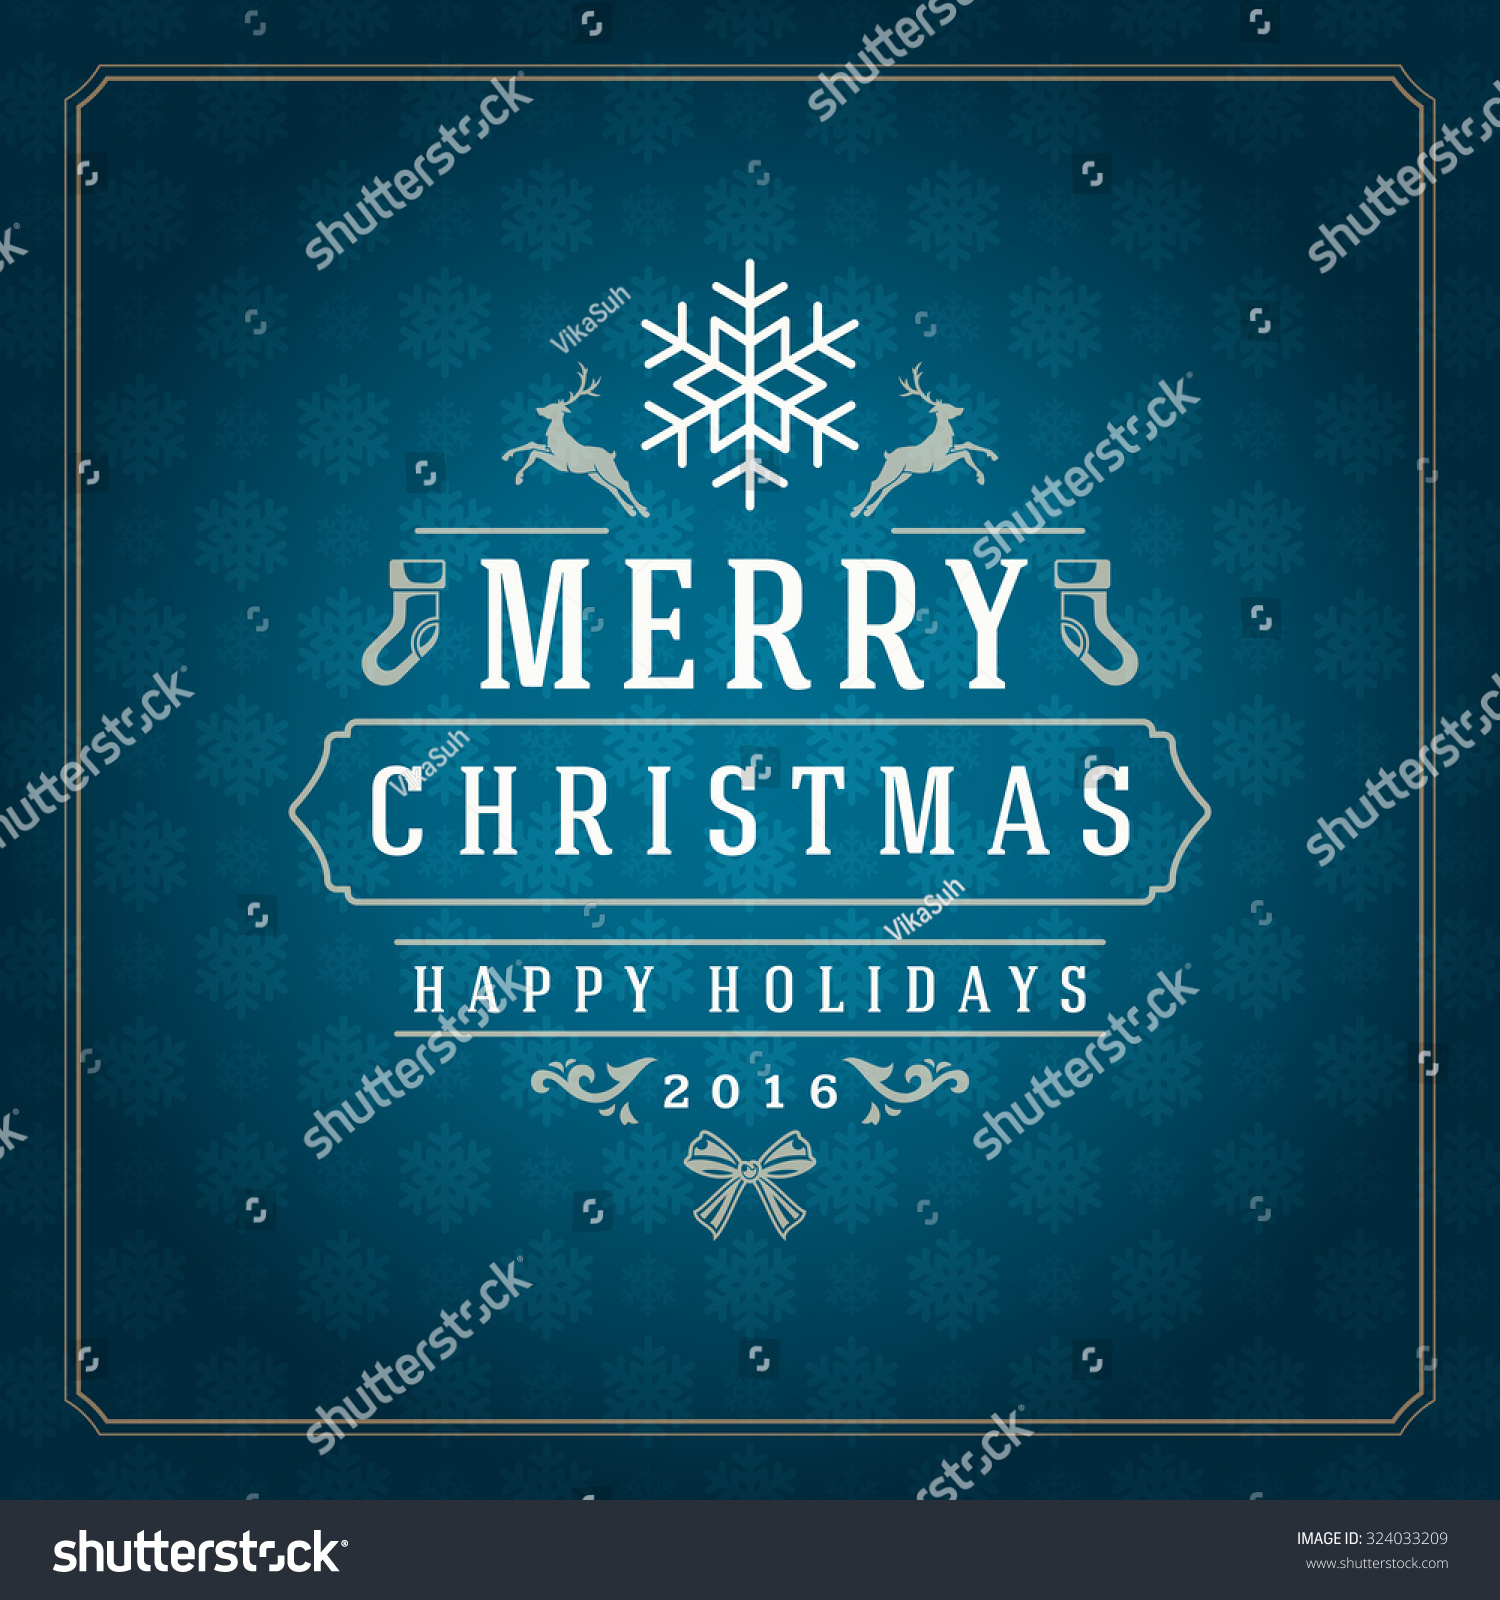 Merry Christmas Greetings Card Poster Design Stock Vector 324033209